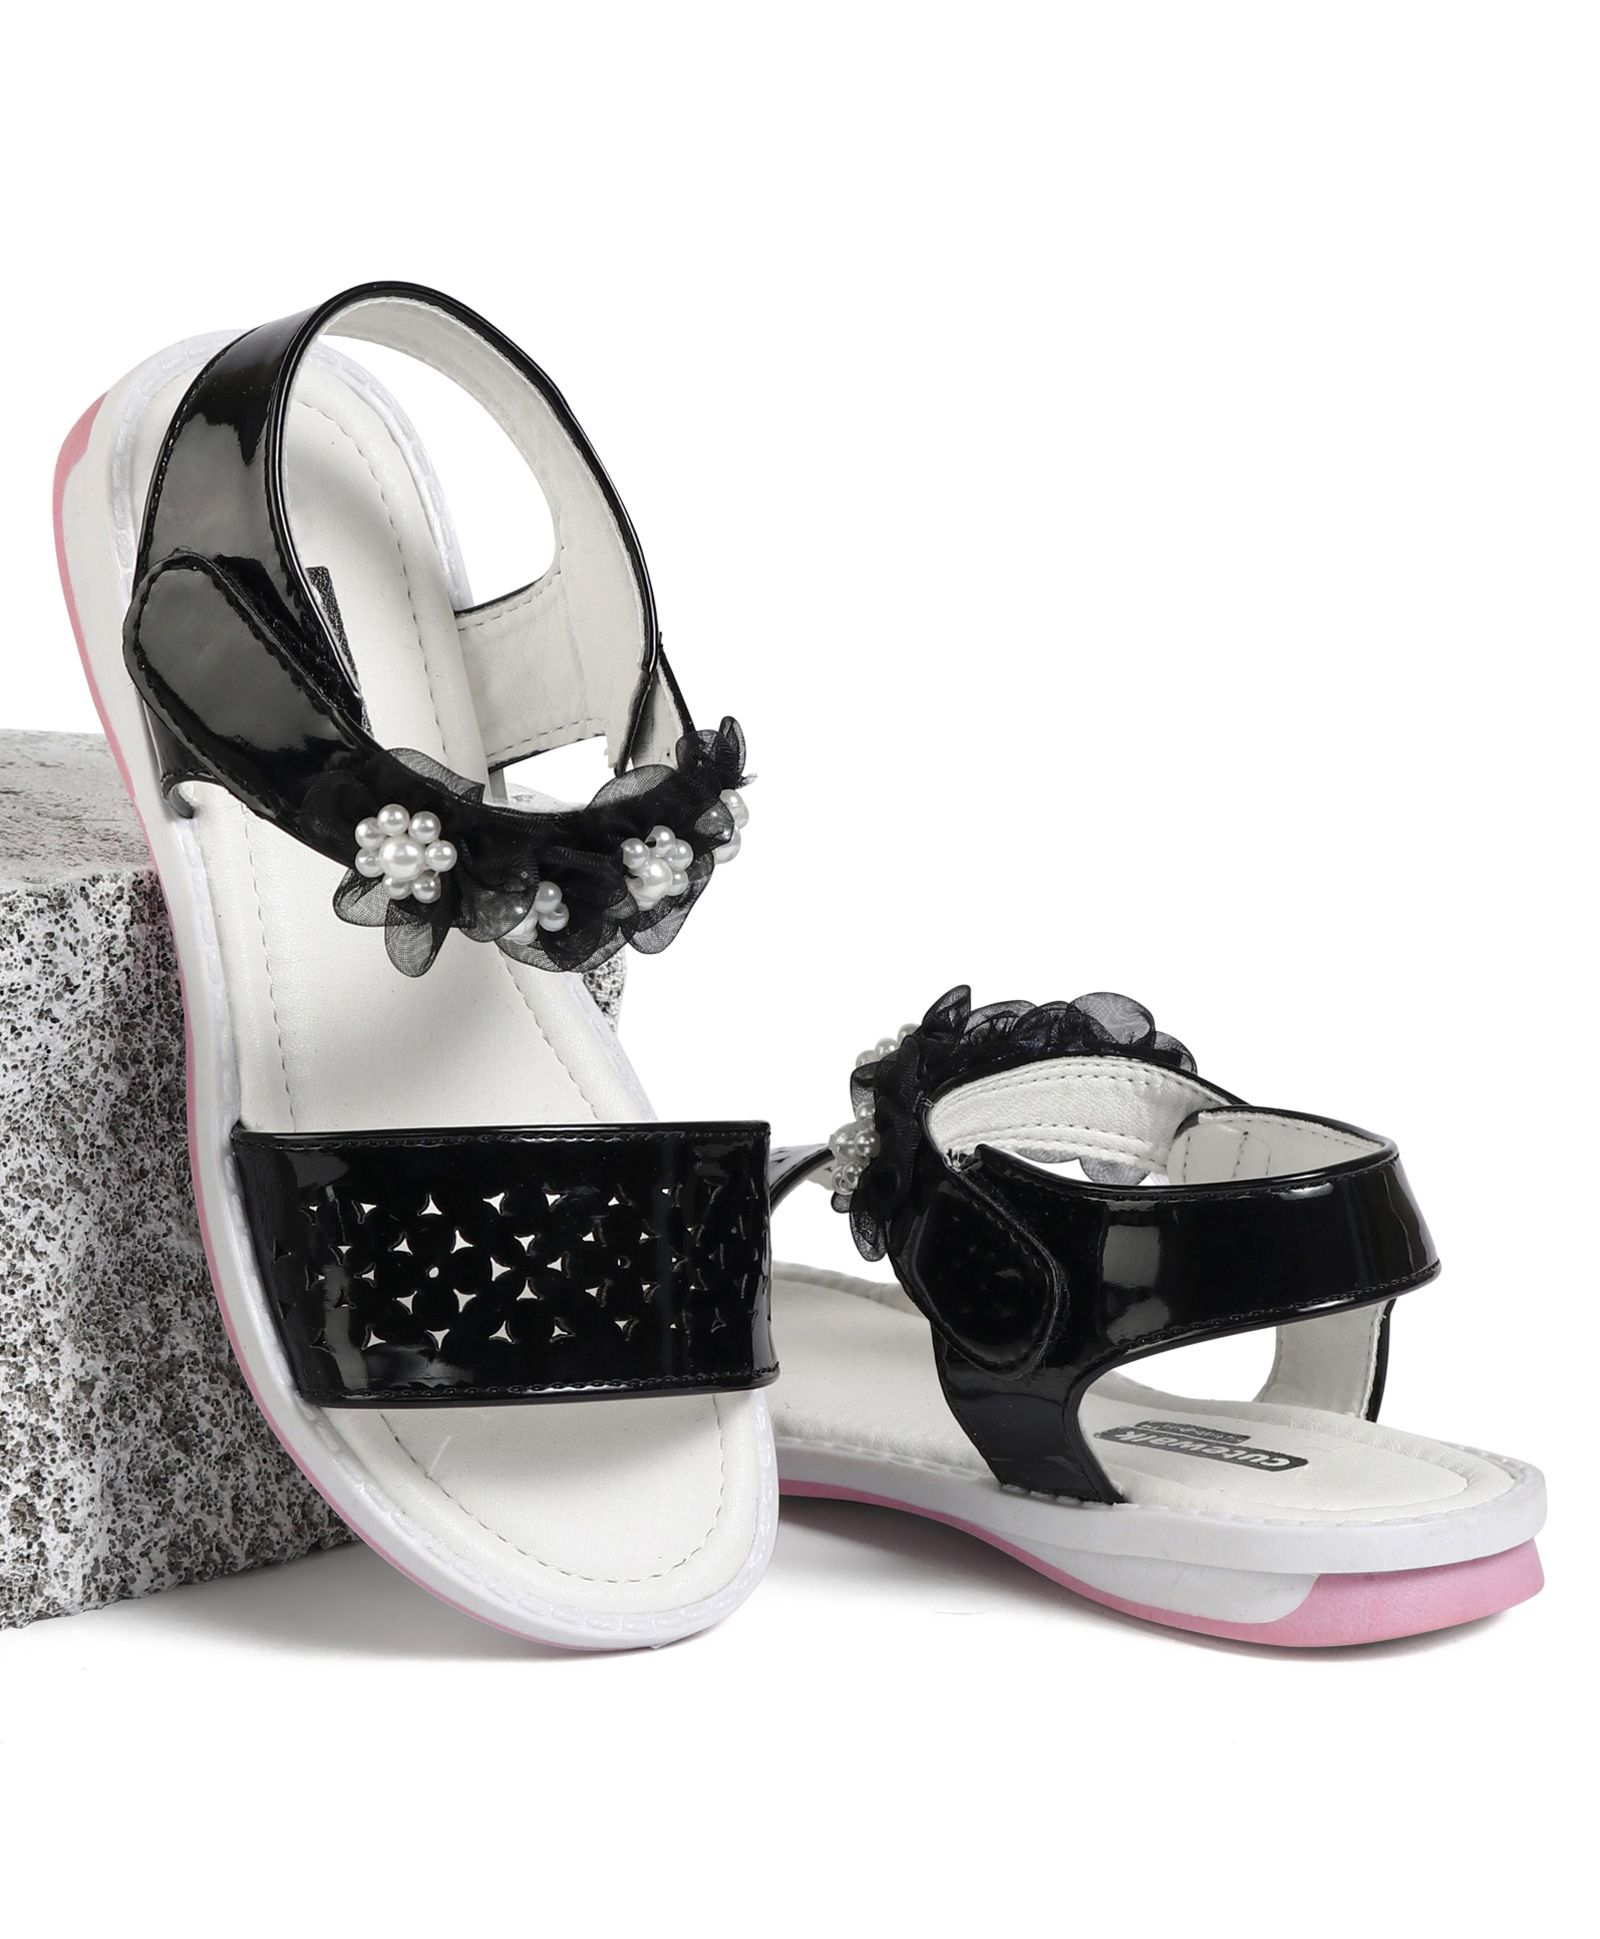 0be39a84421 Cute Walk by Babyhug Party Wear Sandals Floral Motifs - Black White Image